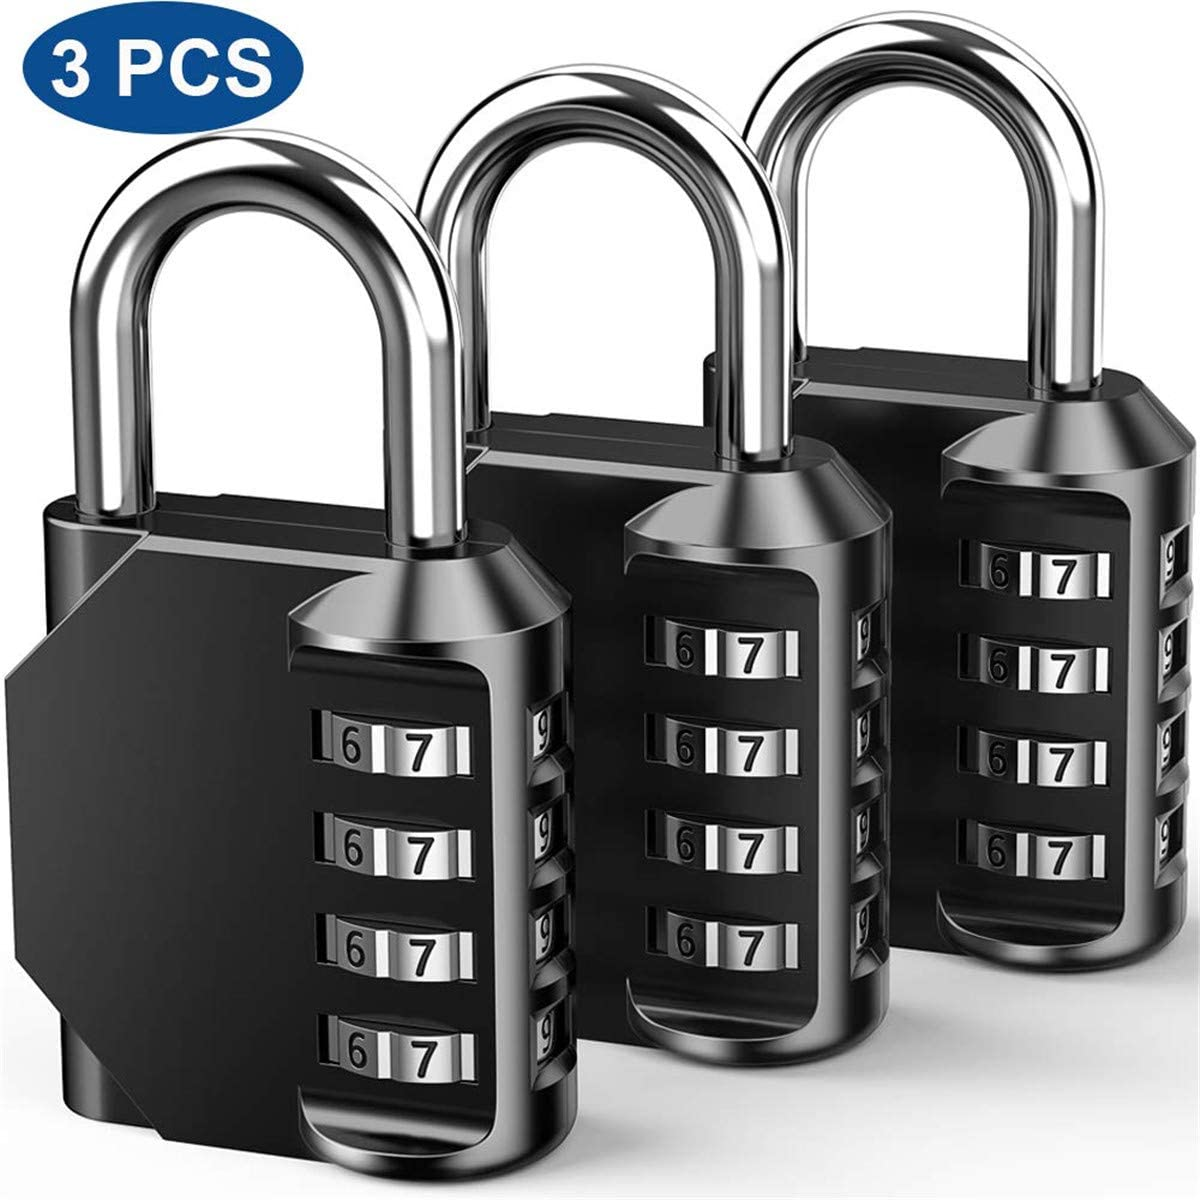 3 Pcs Zinc Alloy 4-Digit Combination Code Lock Minotaur Lock Widely Used in Wardrobe Door Gym Etc (3)